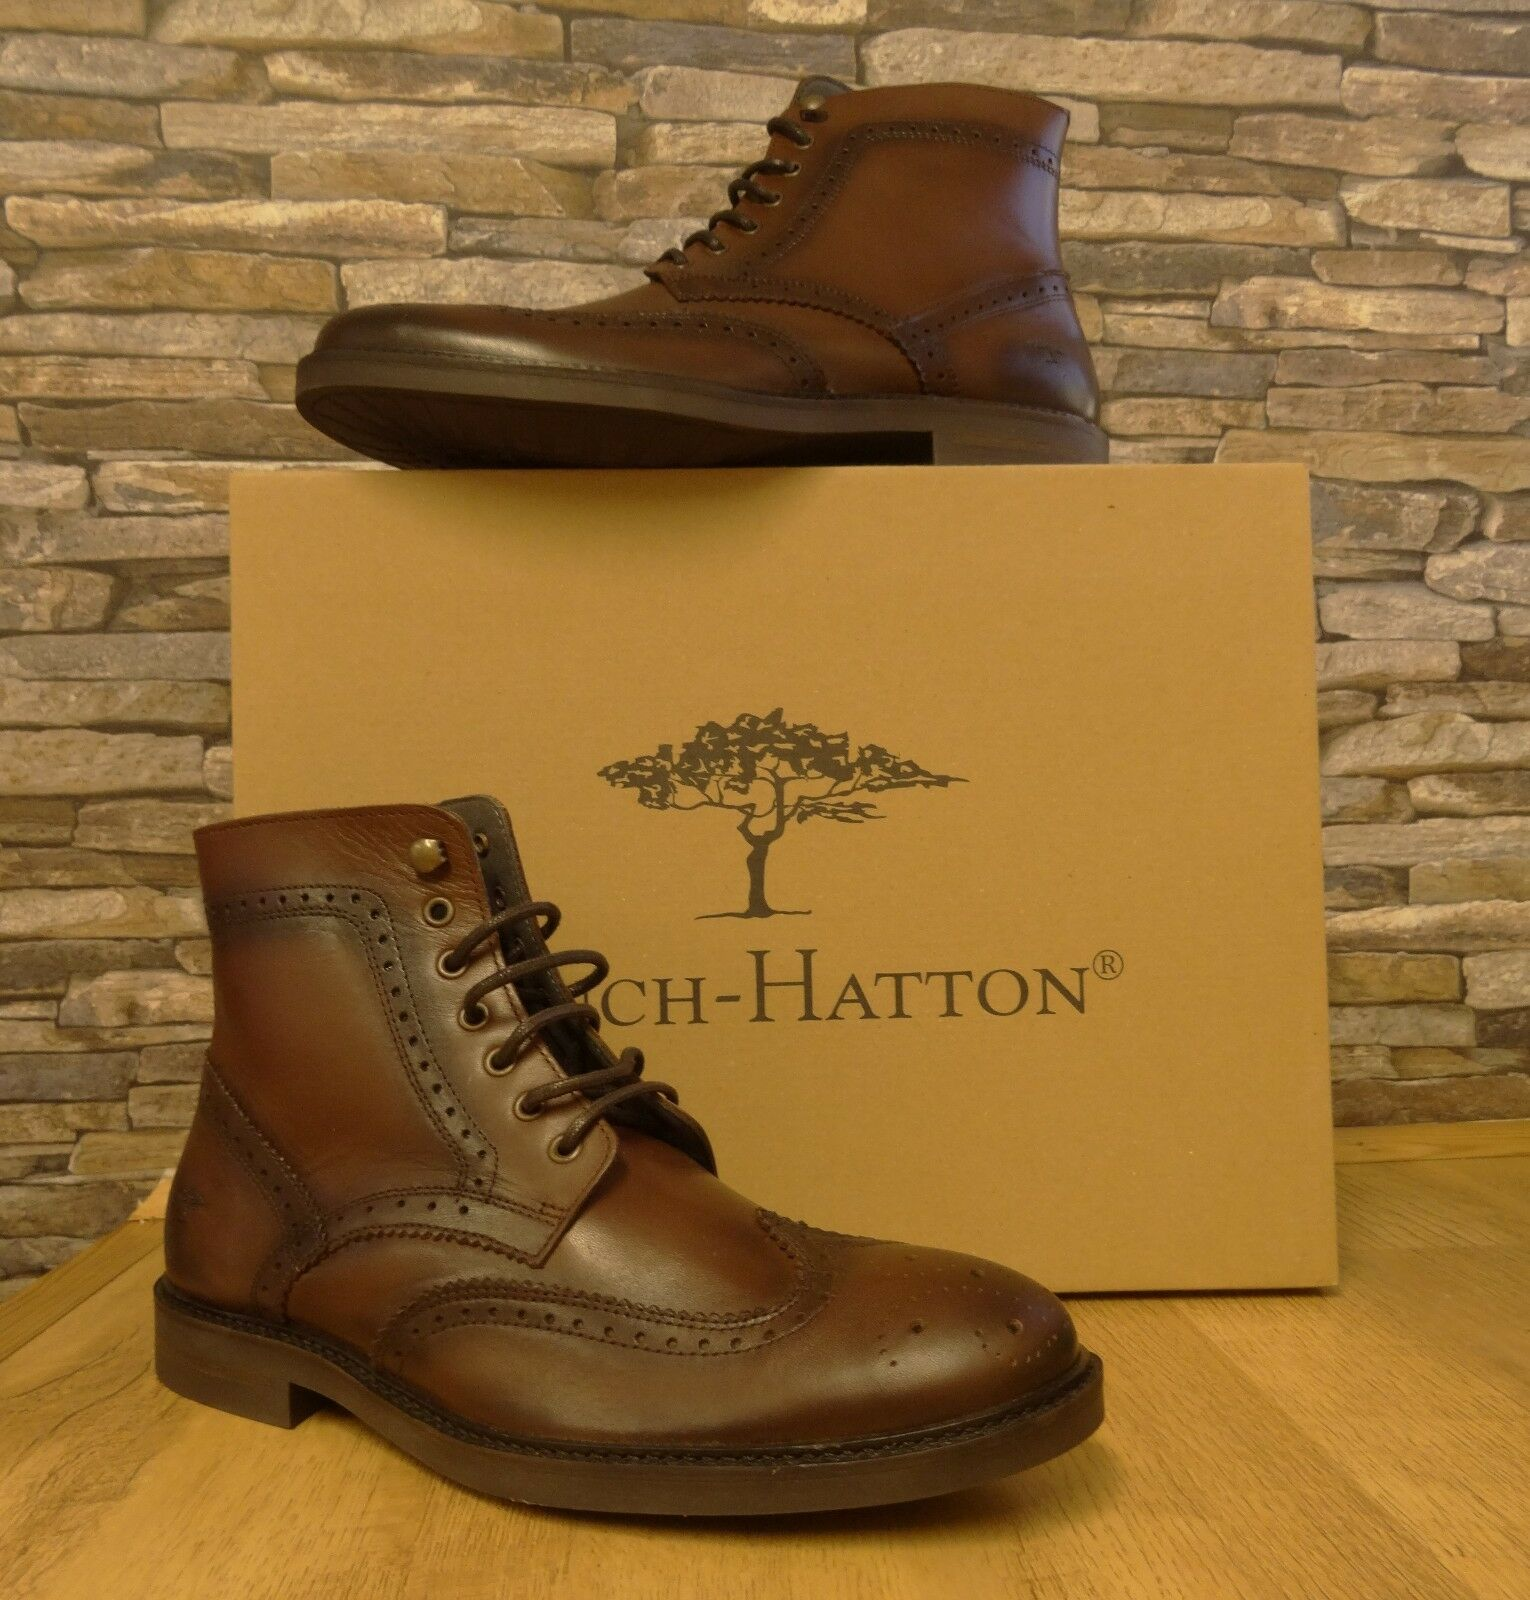 43e6e5bb7e Fynch-Hatton Mens Brown Leather Brogue Boot Size 46 12.5 New with Box  nnrvzc6736-Men's Boots